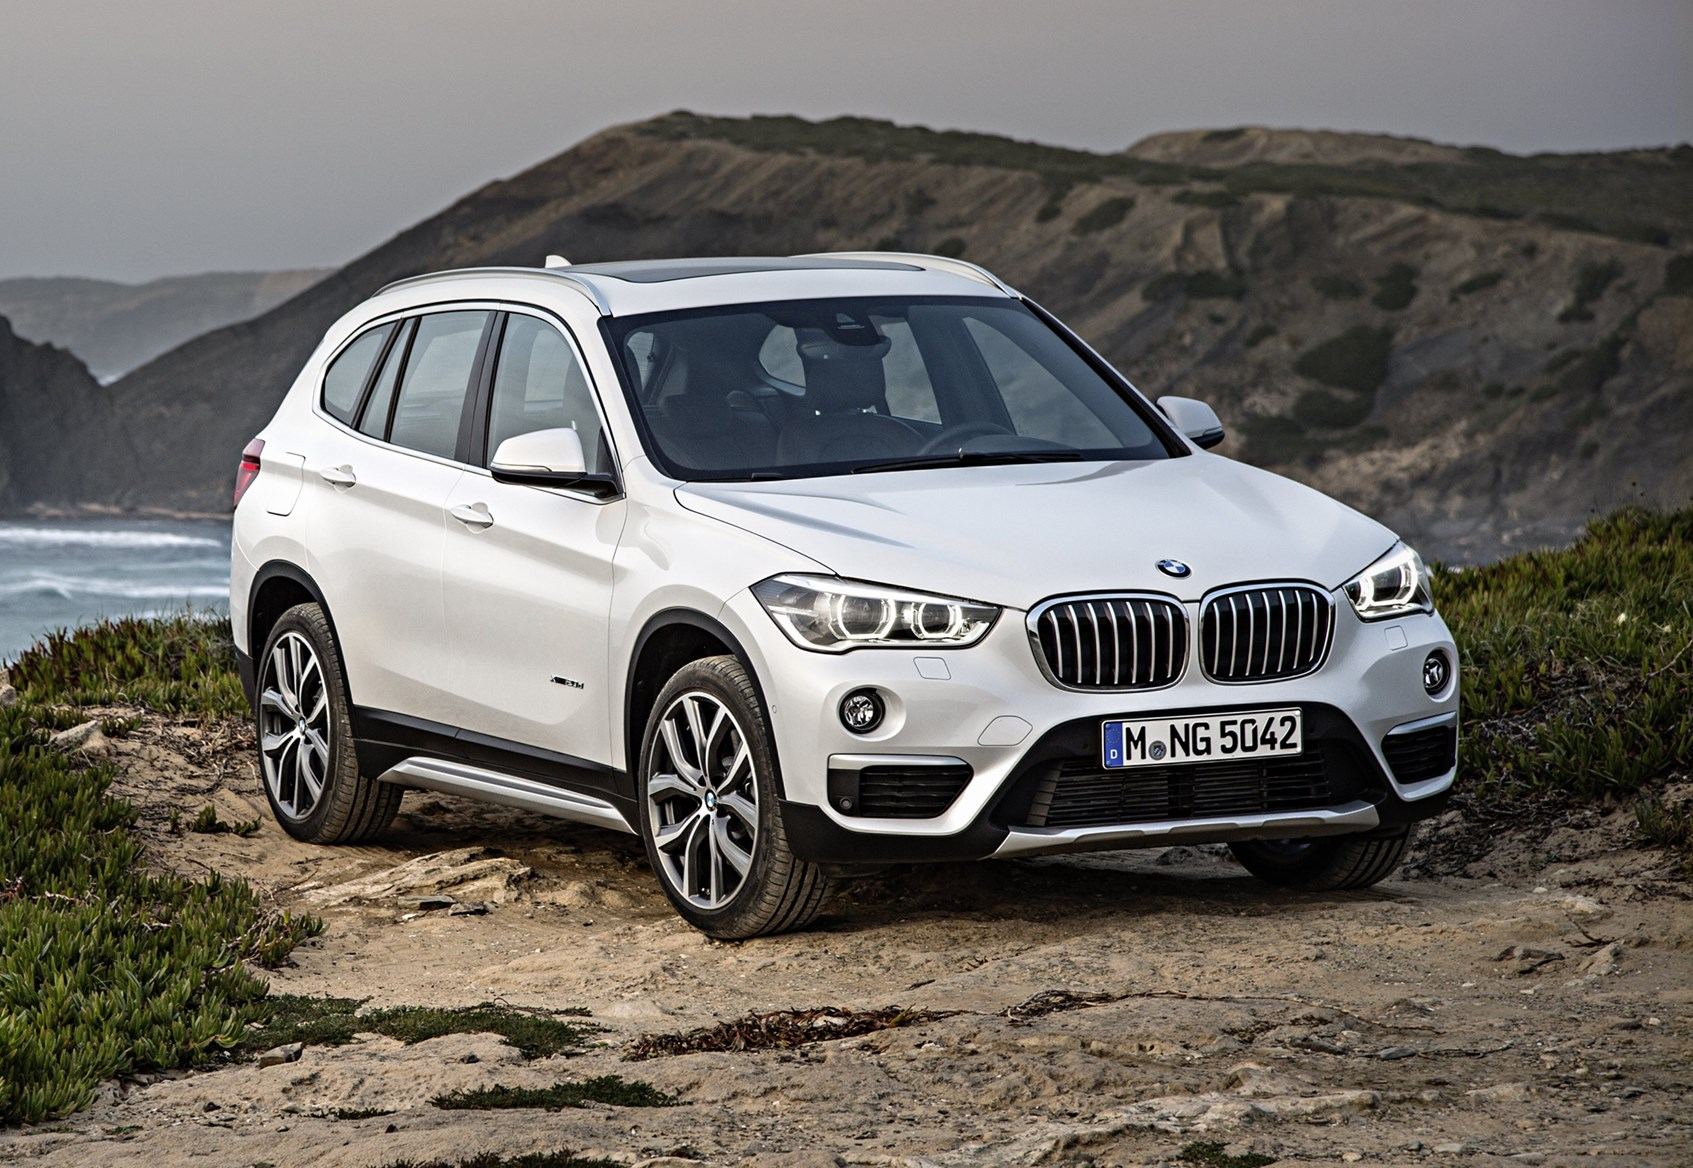 bmw x1 suv review parkers. Black Bedroom Furniture Sets. Home Design Ideas